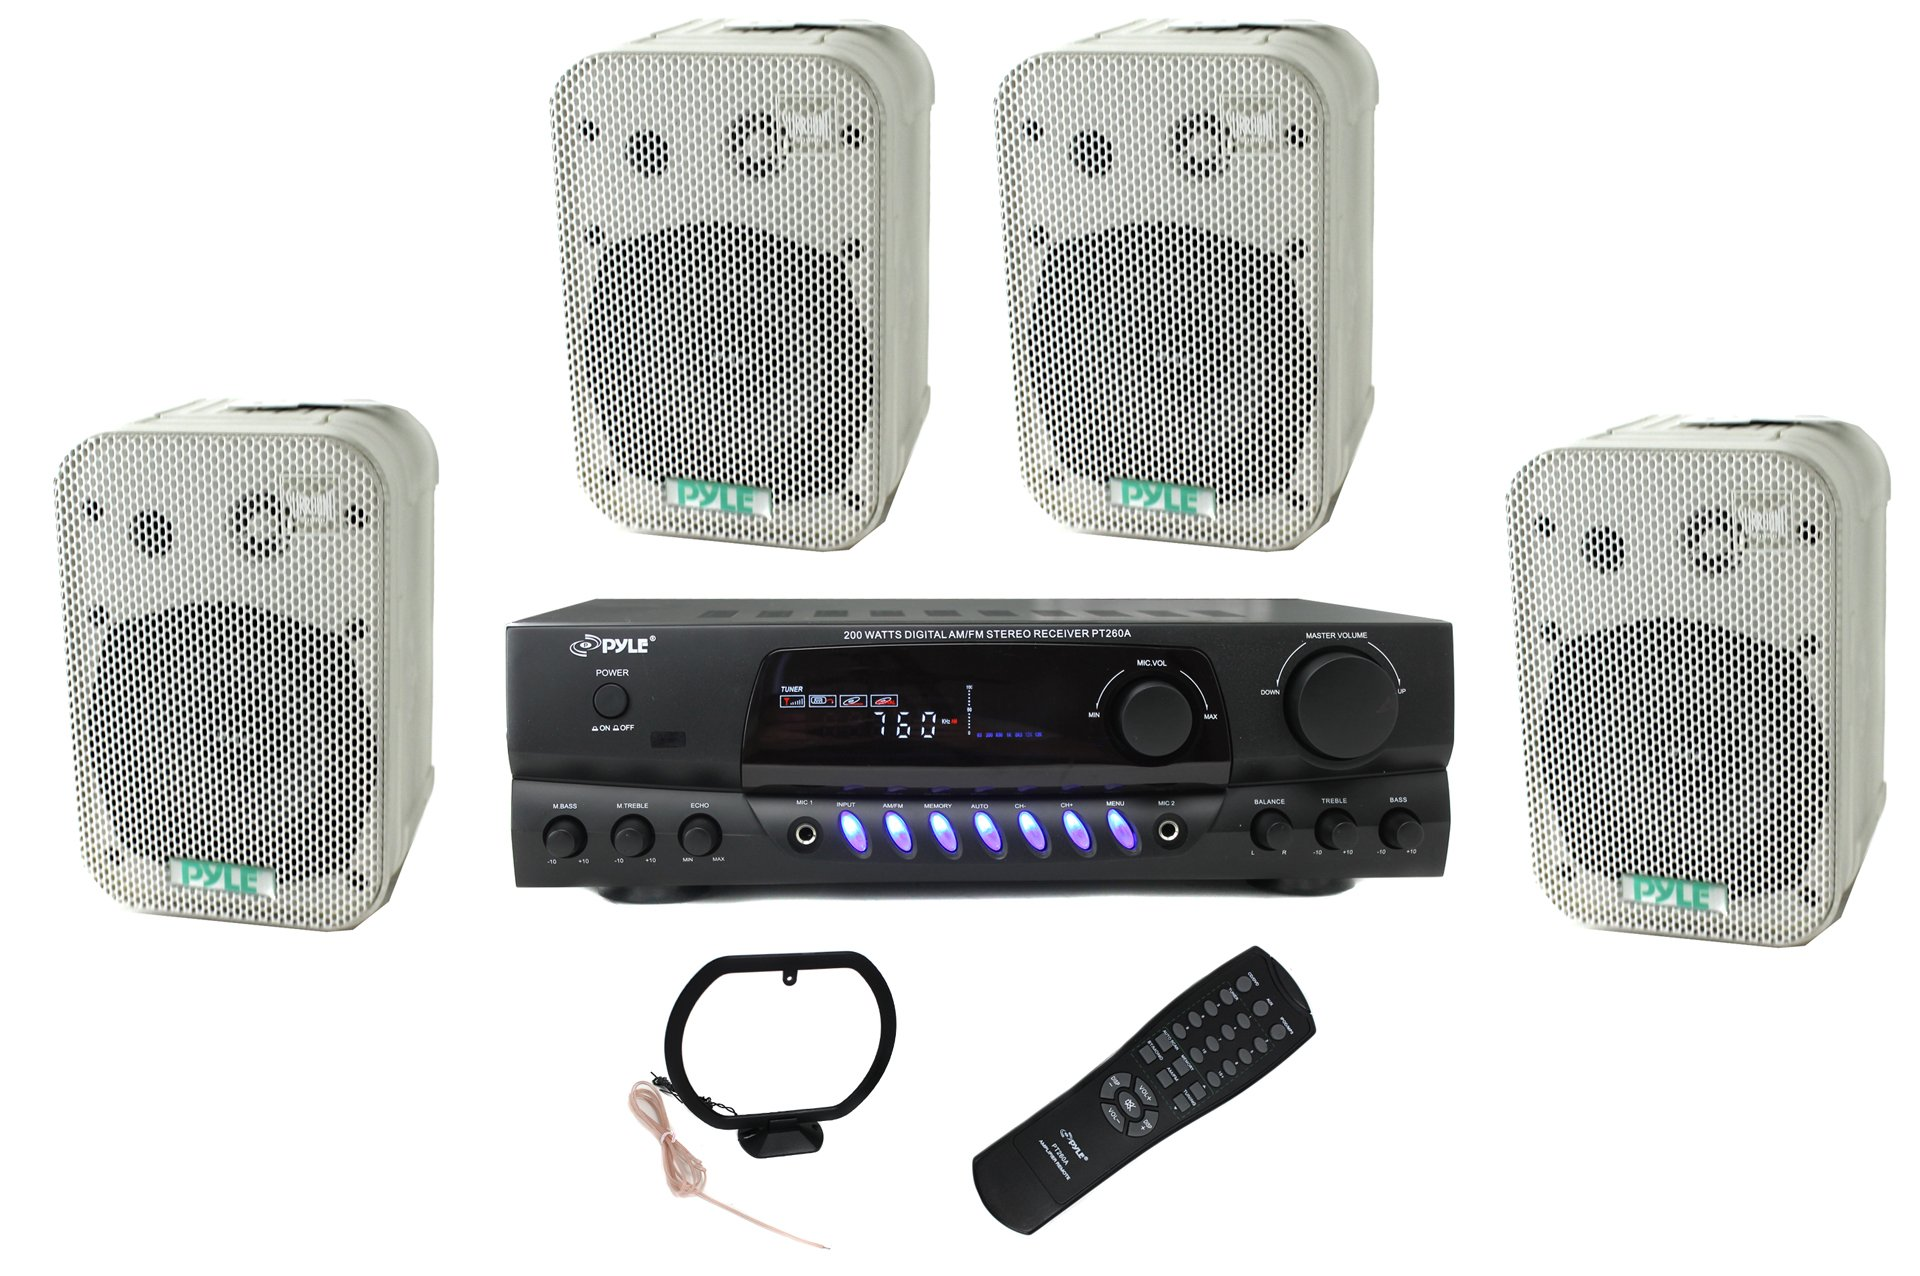 4) Pyle 5.25'' Outdoor Speakers + PT260A 200W Stereo Home Theater Receiver by Pyle